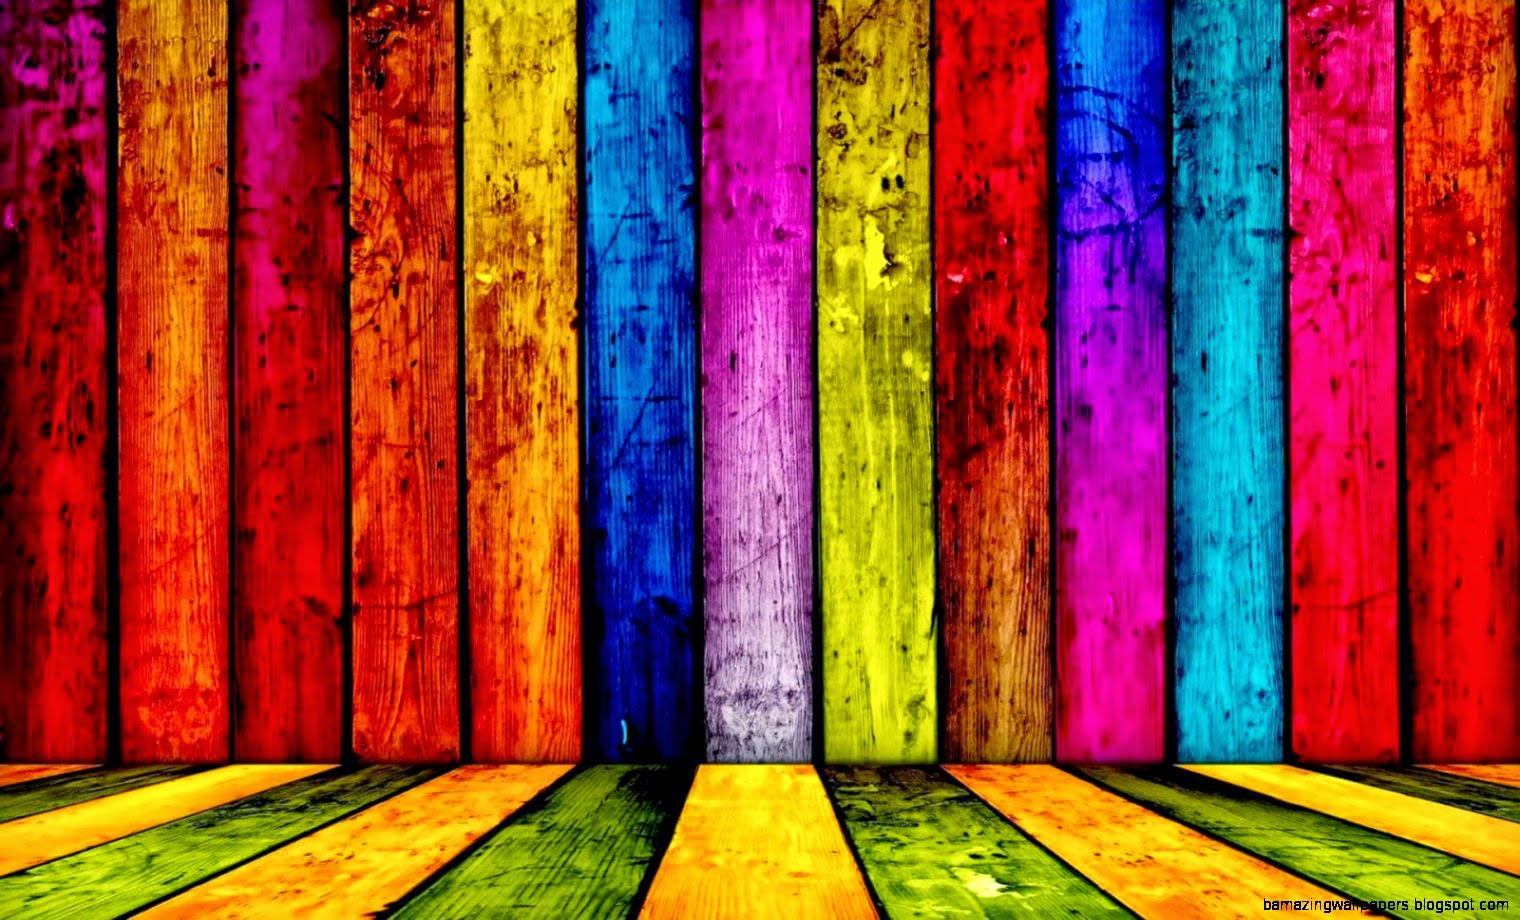 Colorful Abstract Wallpapers Hd | Amazing Wallpapers - photo#17